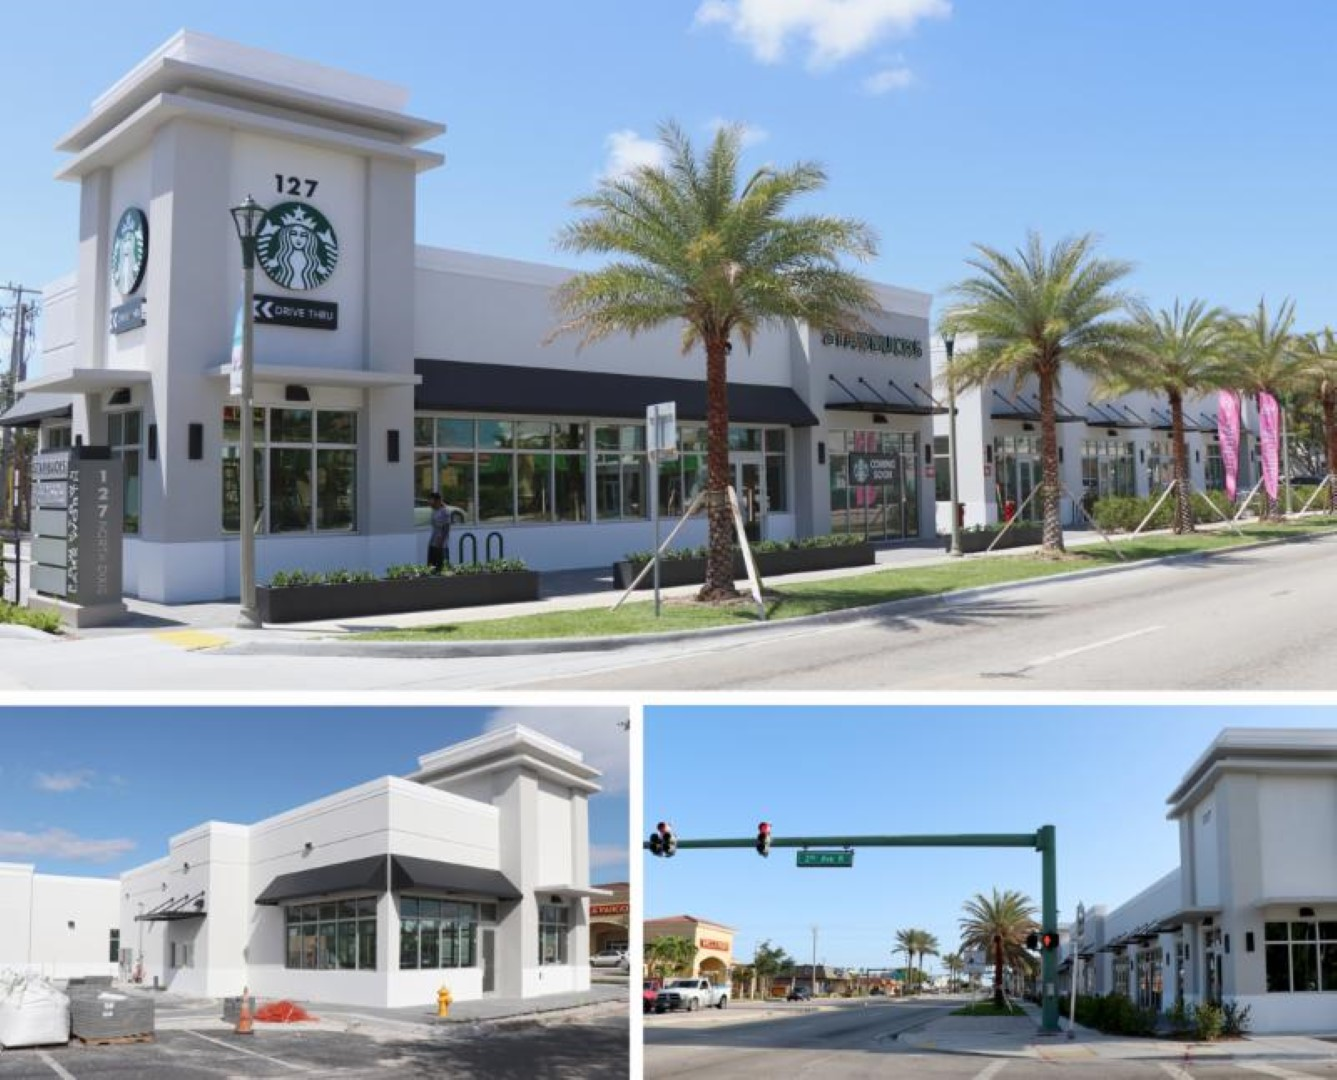 Images of new commercial buildings at 127 North Dixie Highway